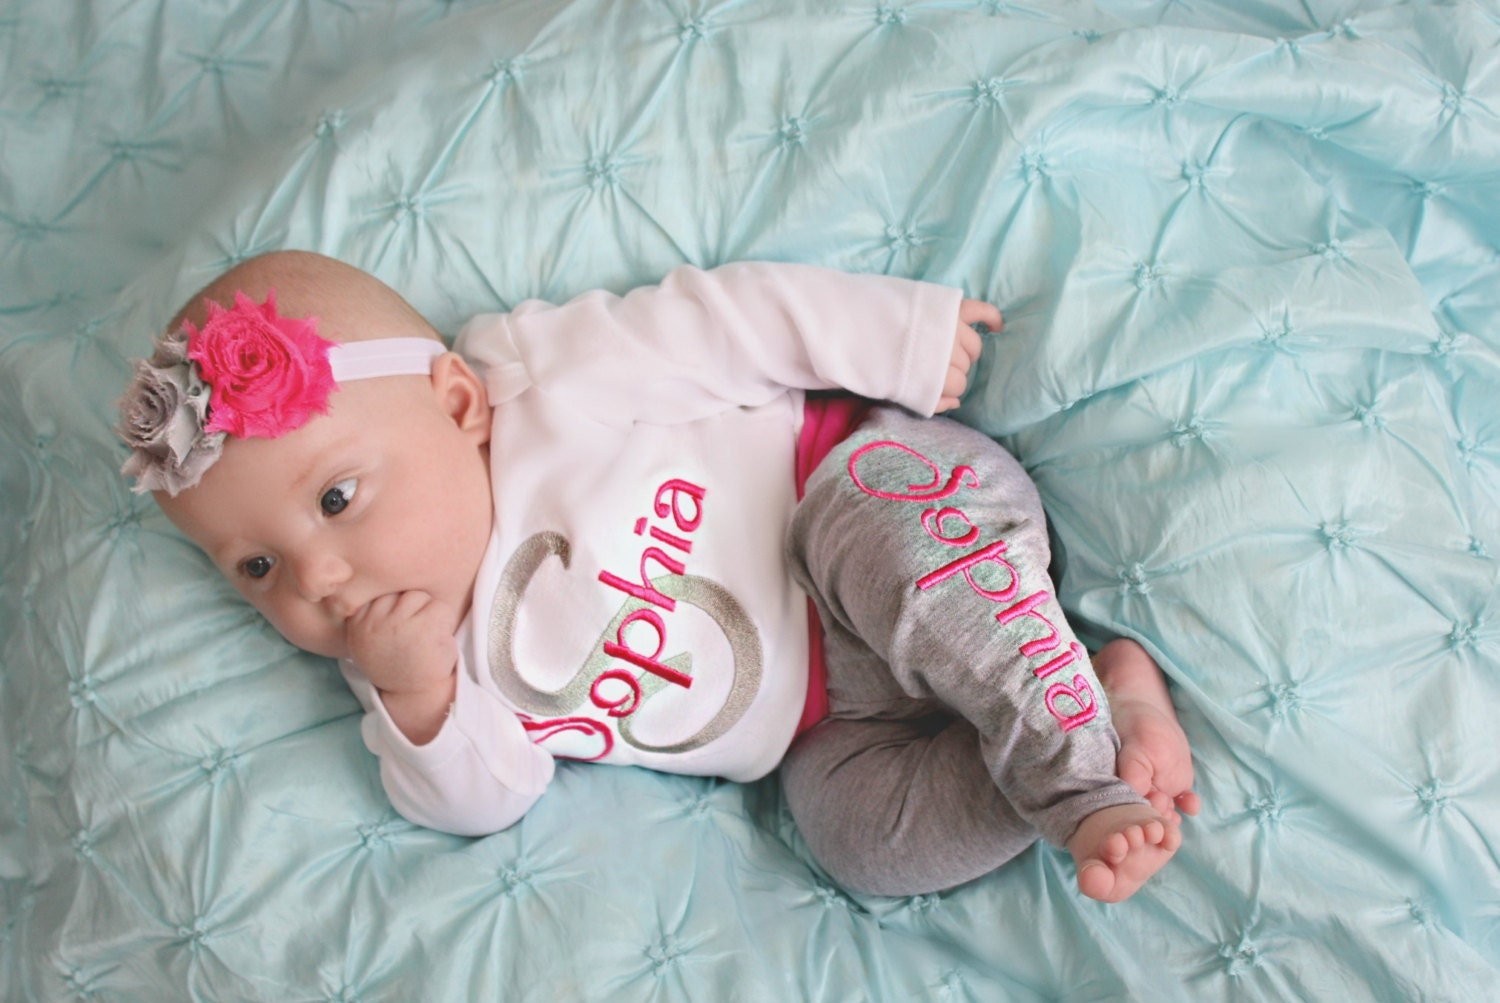 Our layettes for newborn baby girls and boys are made with the softest fabrics. Shop newborn boutique clothes with Miki Miette's Layette collection.